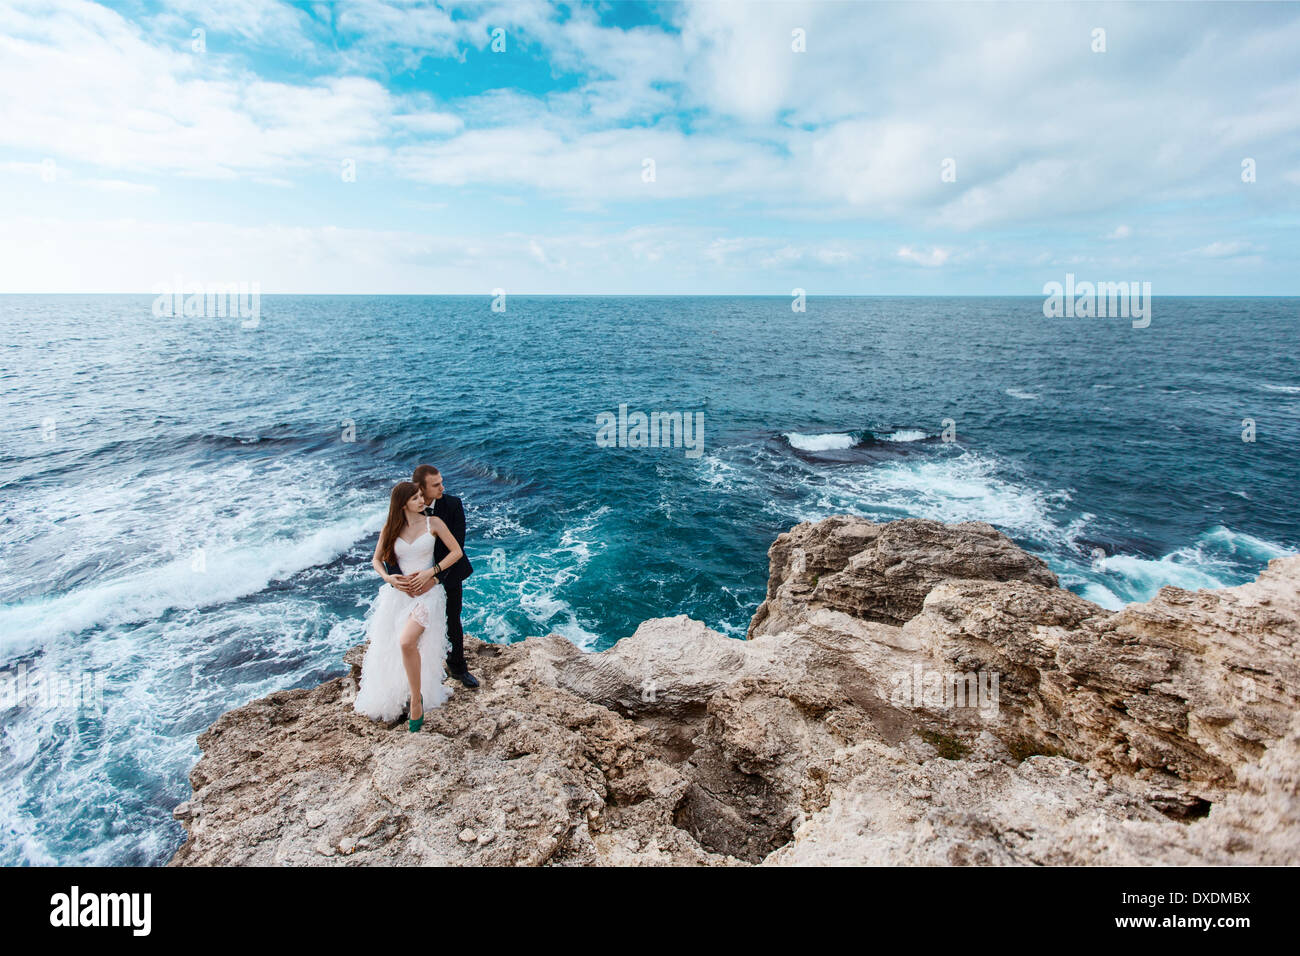 Bride and groom near the ocean - Stock Image